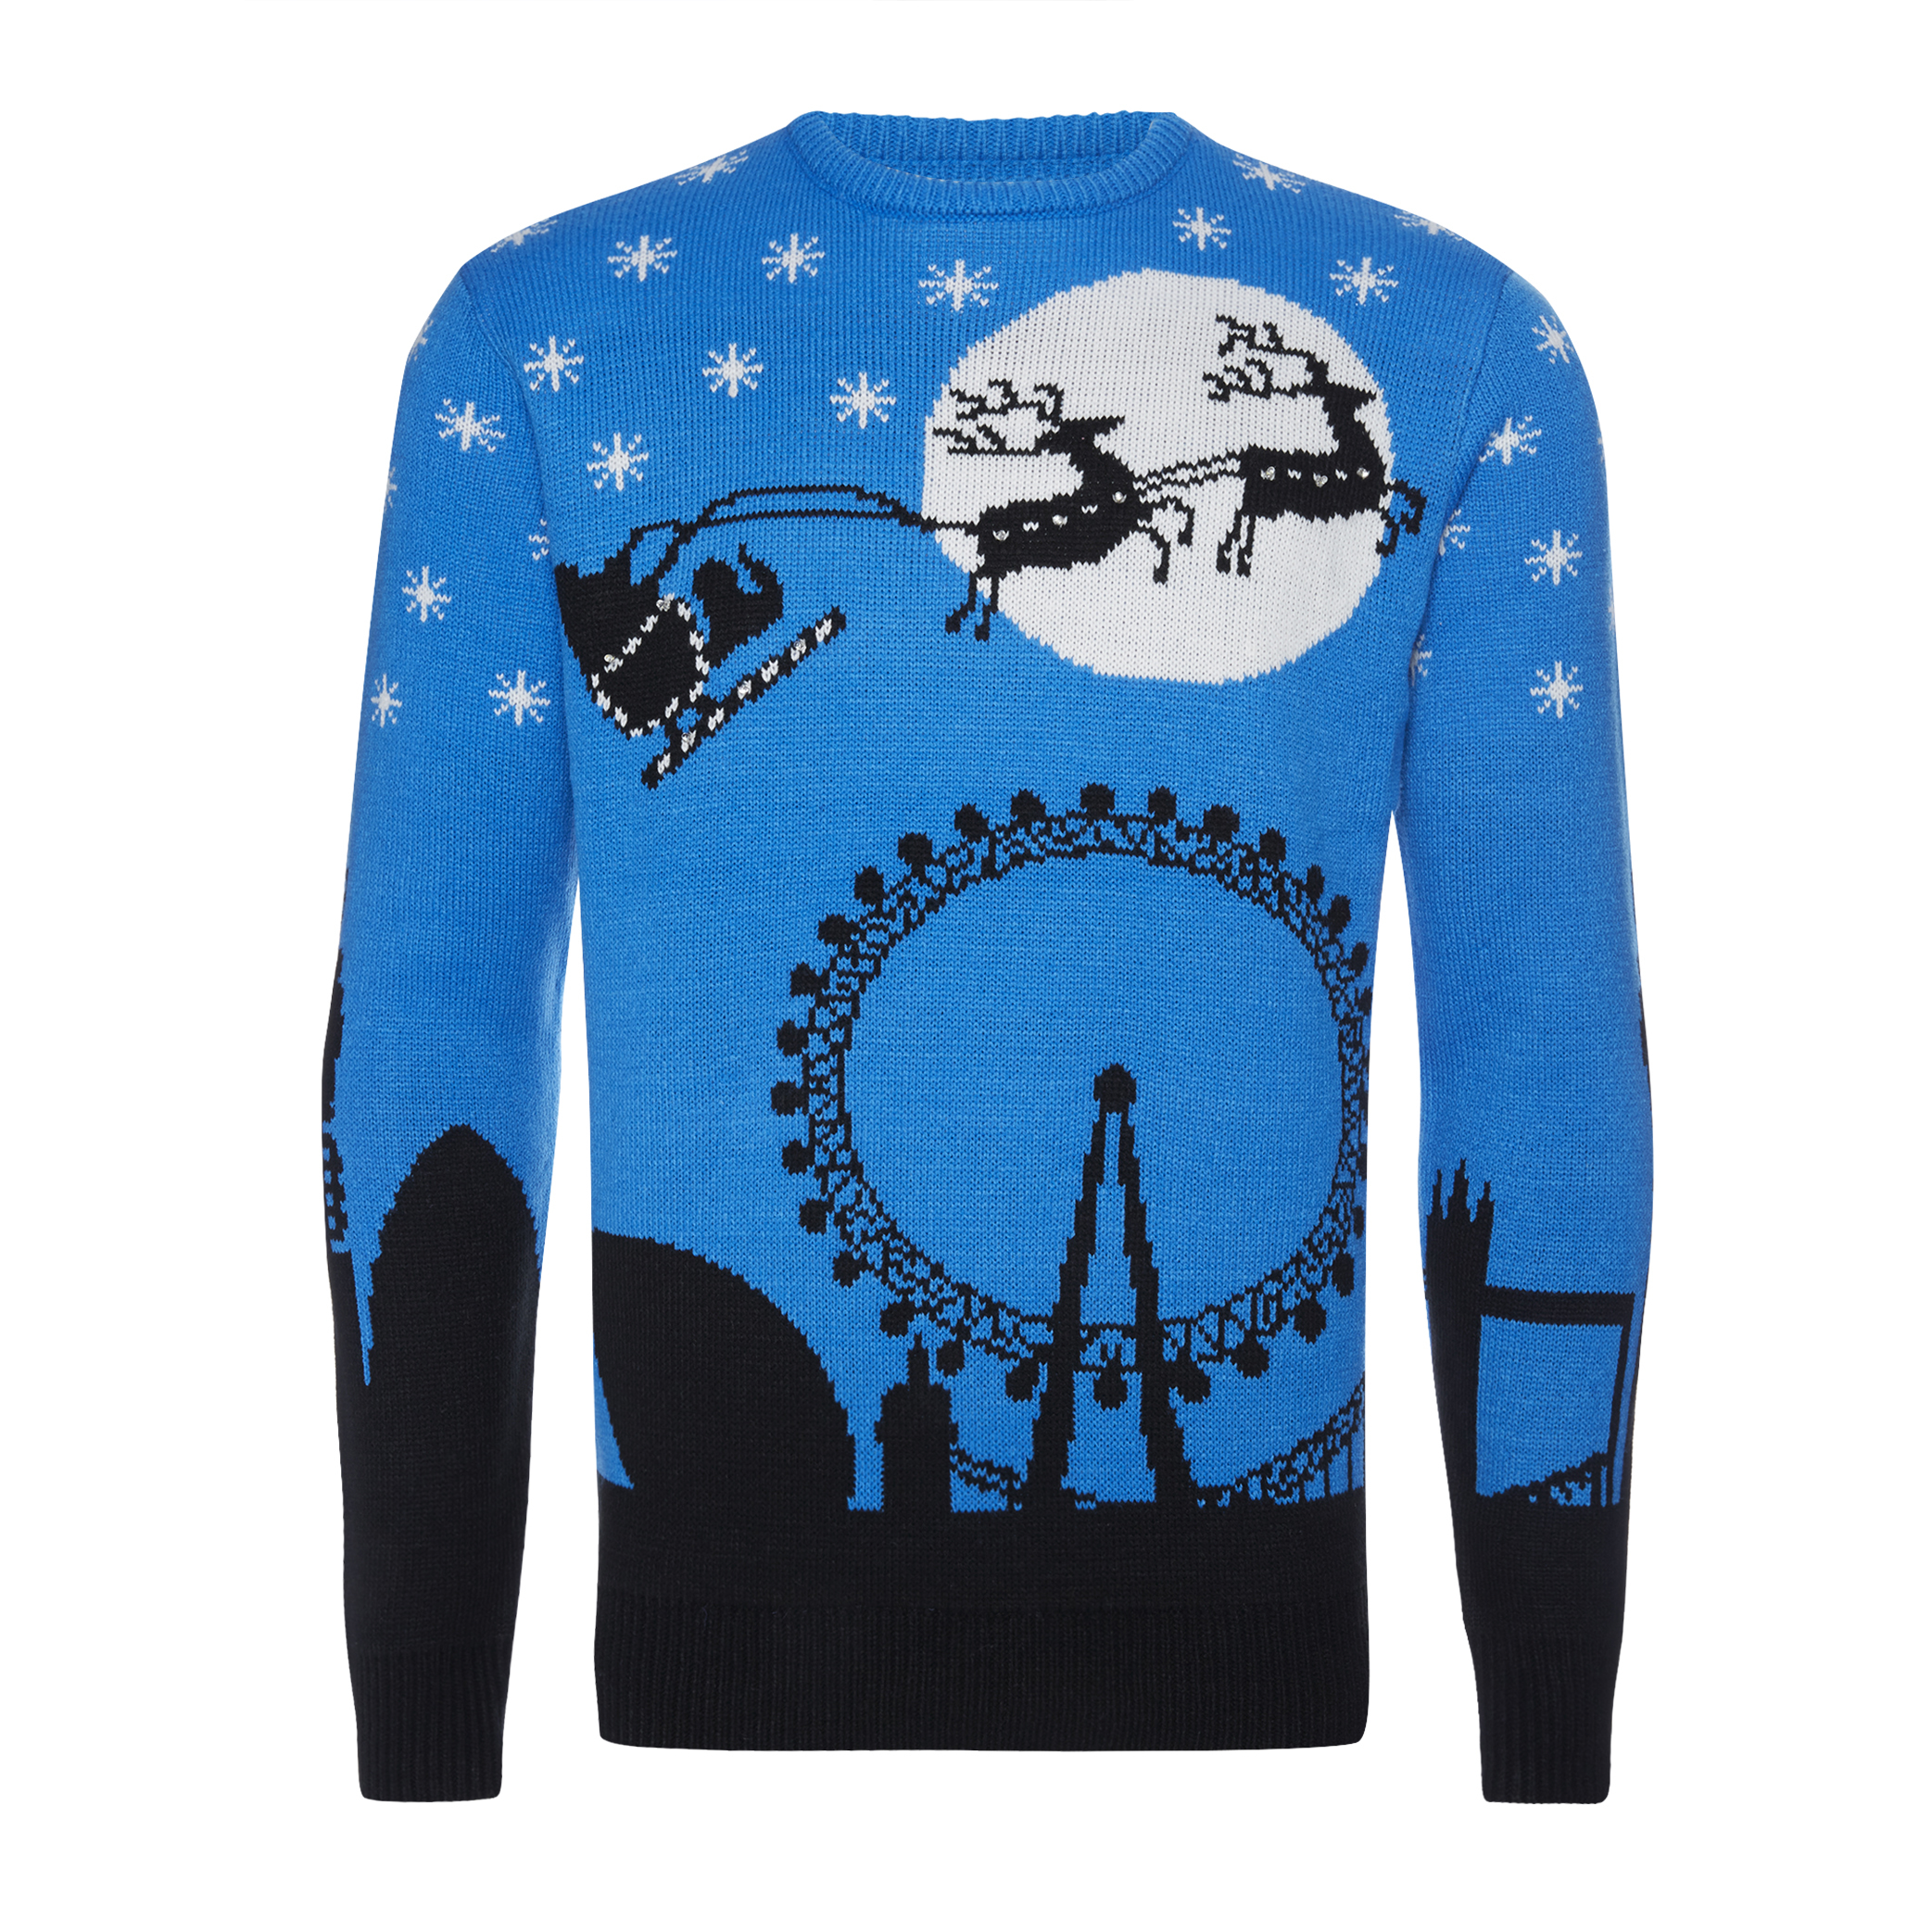 Cheap Christmas jumpers - MyDaily UK